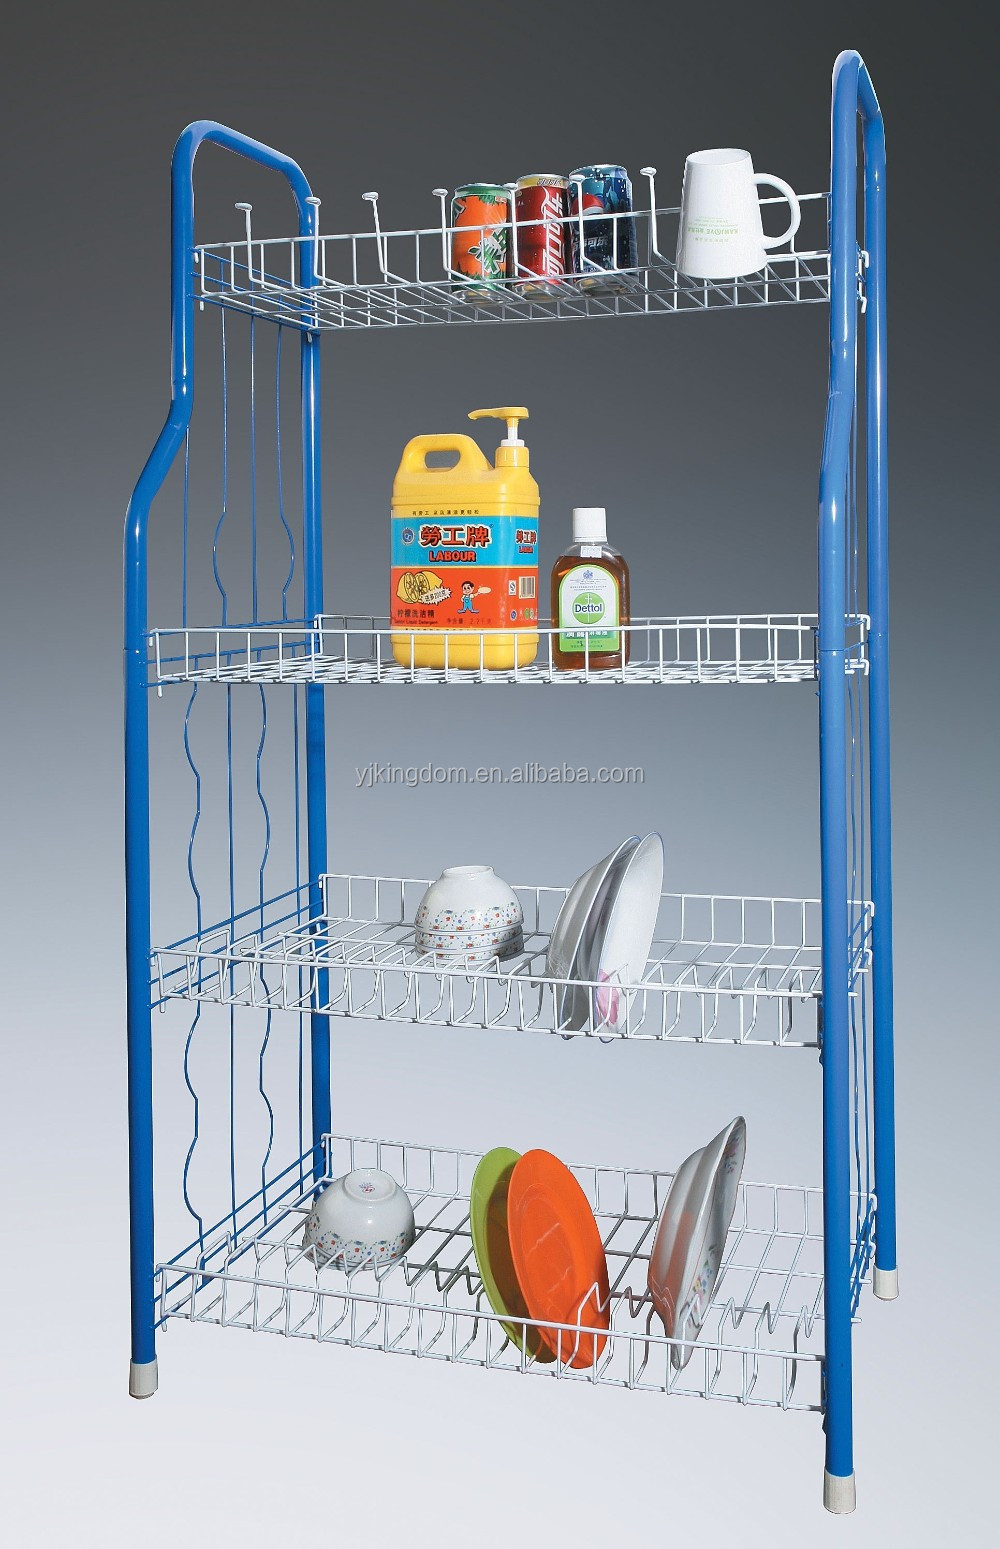 549-66 3-Tier Metal wire Storage Cart with Gold Plated